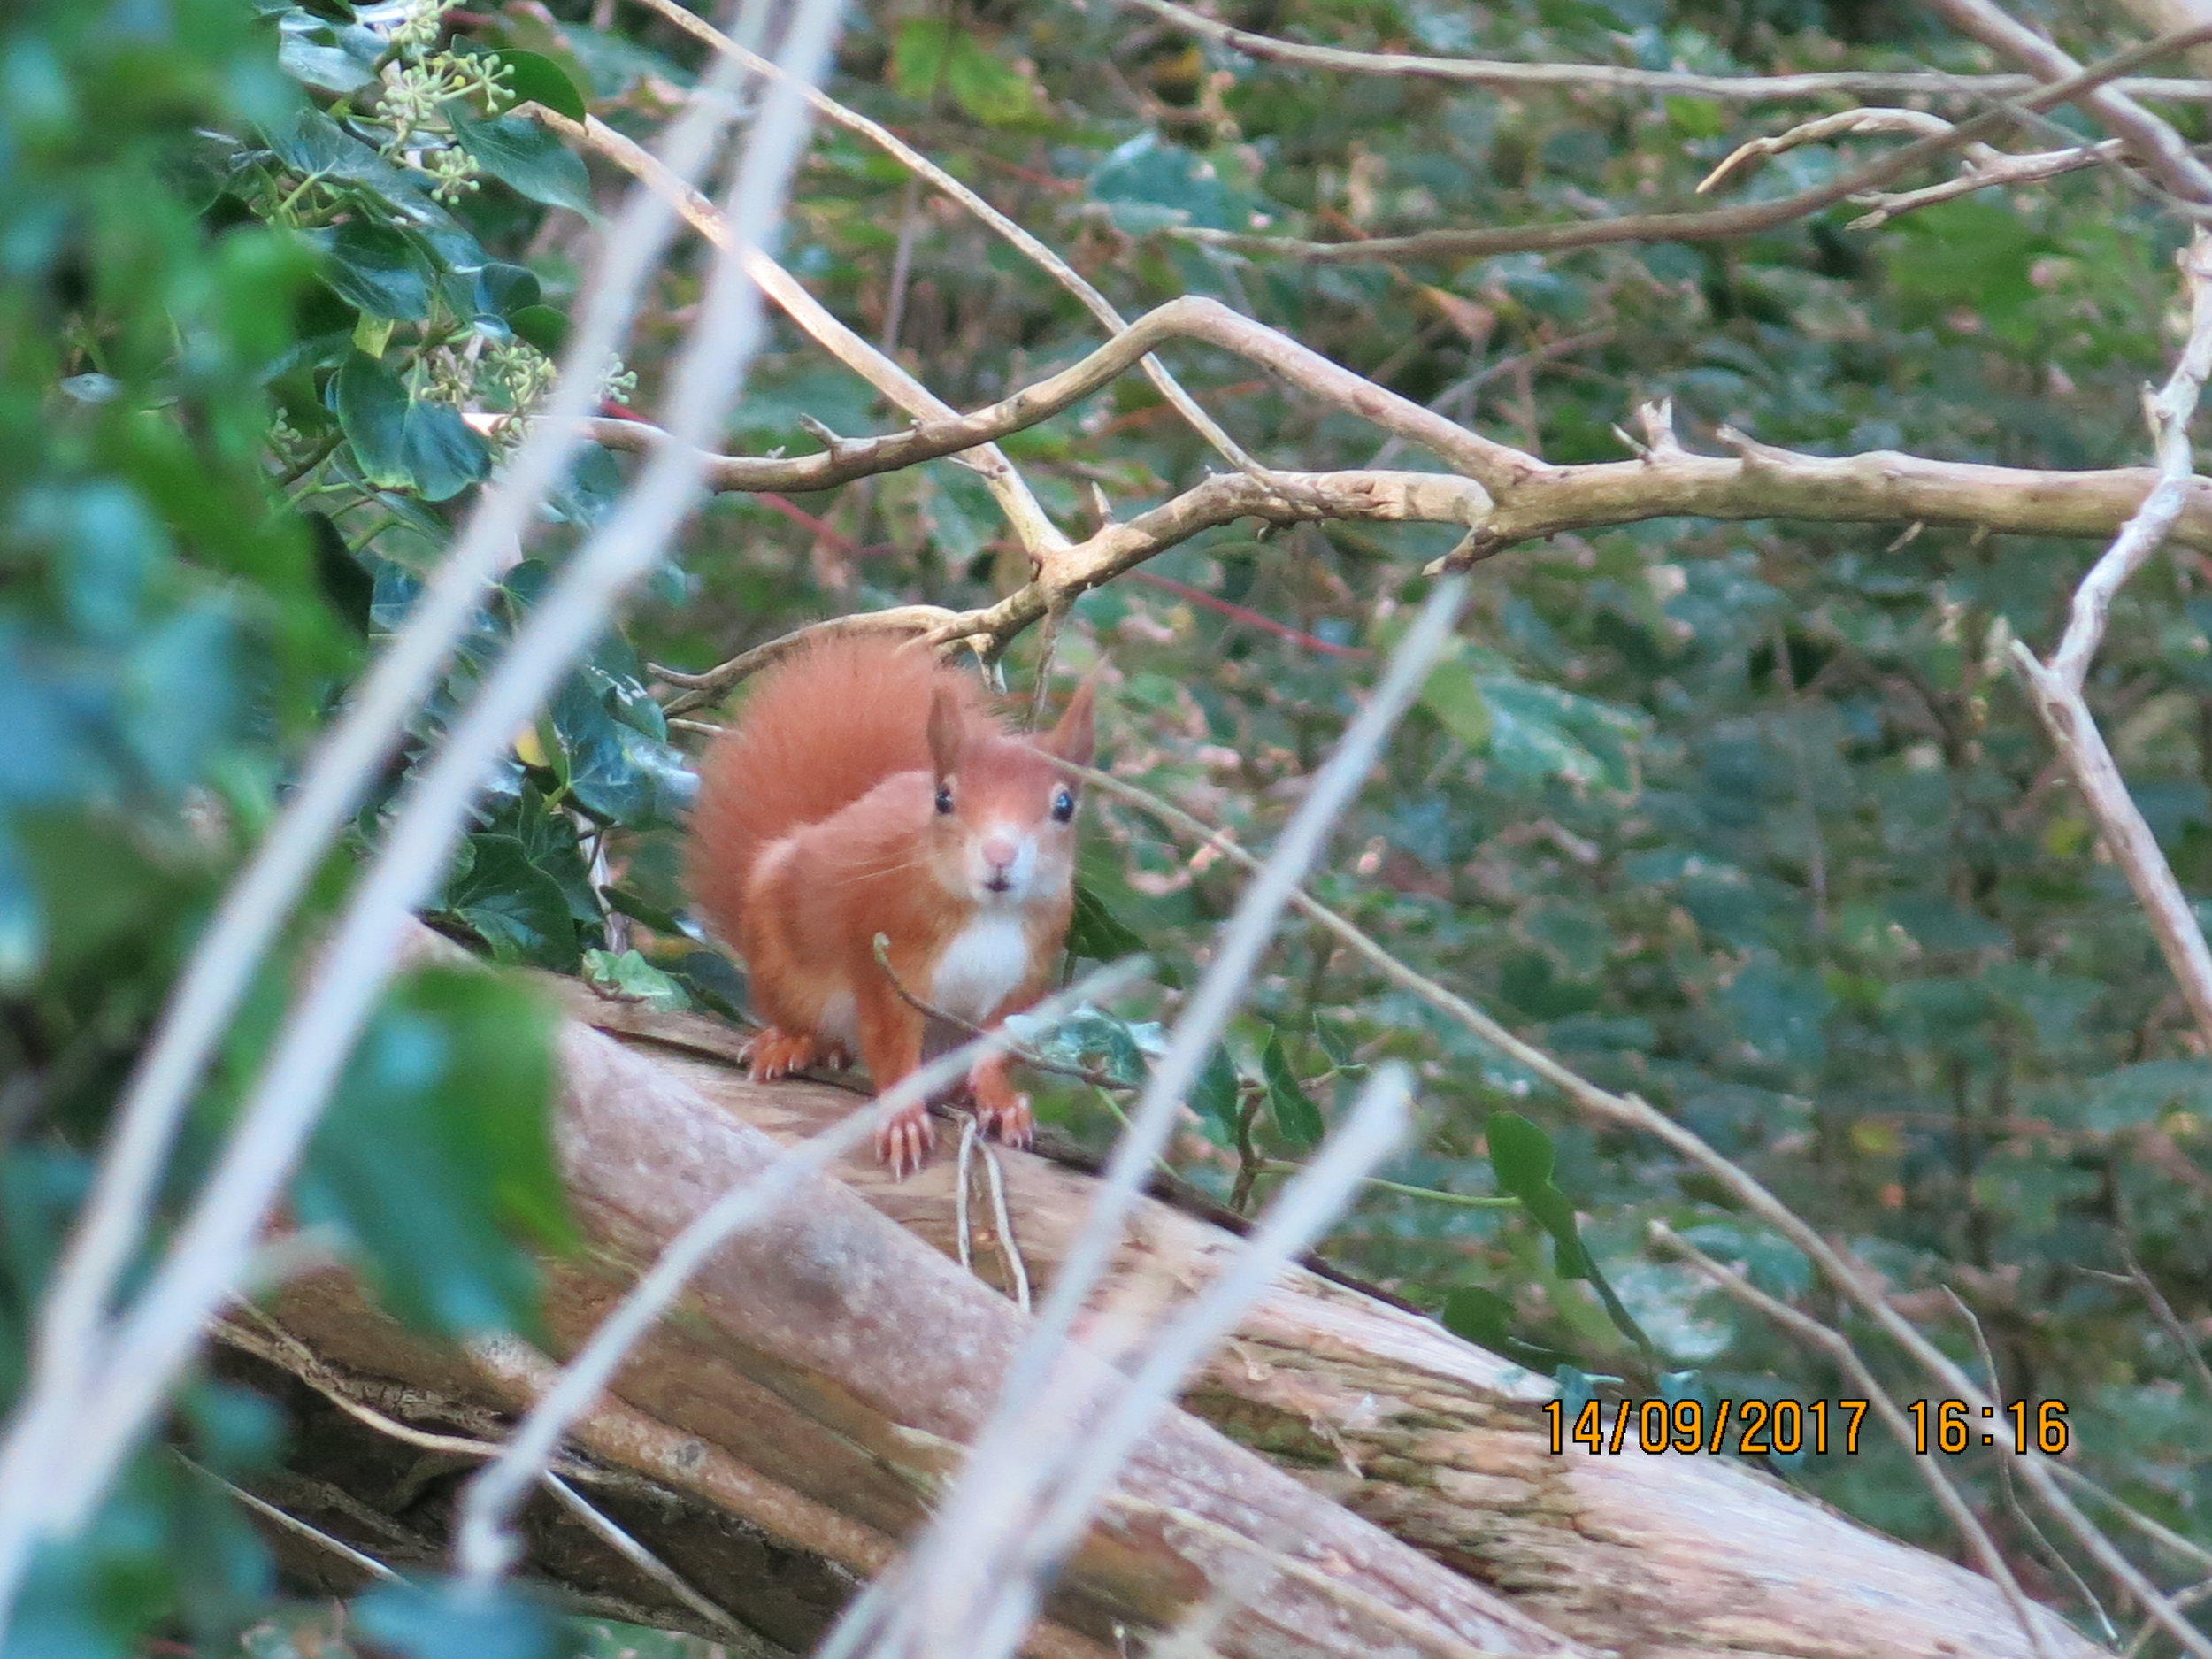 Red Squirrels: Three red squirrels arrived on the island in 2016 after an extensive programme of rat eradication, and then a further 12 were added last year. The island is following a greatly-researched, closely-monitored and supplemented conservation programme, where the health and happiness of the squirrels is paramount. The aim is for the reds to live in natural habitat with no competition from grey squirrels, which is a rare thing in the UK. The squirrels' welfare is continually assessed, and so far they are enjoying their surroundings, building dreys, finding food, exploring the island, and raising young. We are delighted to have spotted at least eight kits in three different groups during 2018 and we know that they are spreading out from where they were first established.  The squirrels are being fed hazelnuts, peanuts, sunflower seeds and cuttlefish via 22 feeders (with the first year's feed sponsored by Tenby Lions). The feeders are topped up twice weekly, though in addition there are a variety of natural foods for the squirrels to forage in the woodland areas. The feeding stations allow us to observe and sometimes film the squirrels' feeding habits which provides valuable information for us in monitoring their activity and numbers. The island is now planting further areas of native trees to provide more food for the squirrels in the future. Management of the gene-pool began by introducing squirrels from different stocks, and will continue by movement of squirrels within conservation projects in the UK. The introduction was made possible with the expertise and advice of wildlife expert Dr. Nick Fox of International Wildlife Consultants near St. Clears. We are also very grateful to Tenby Lions, and to Simon Hart, MP.